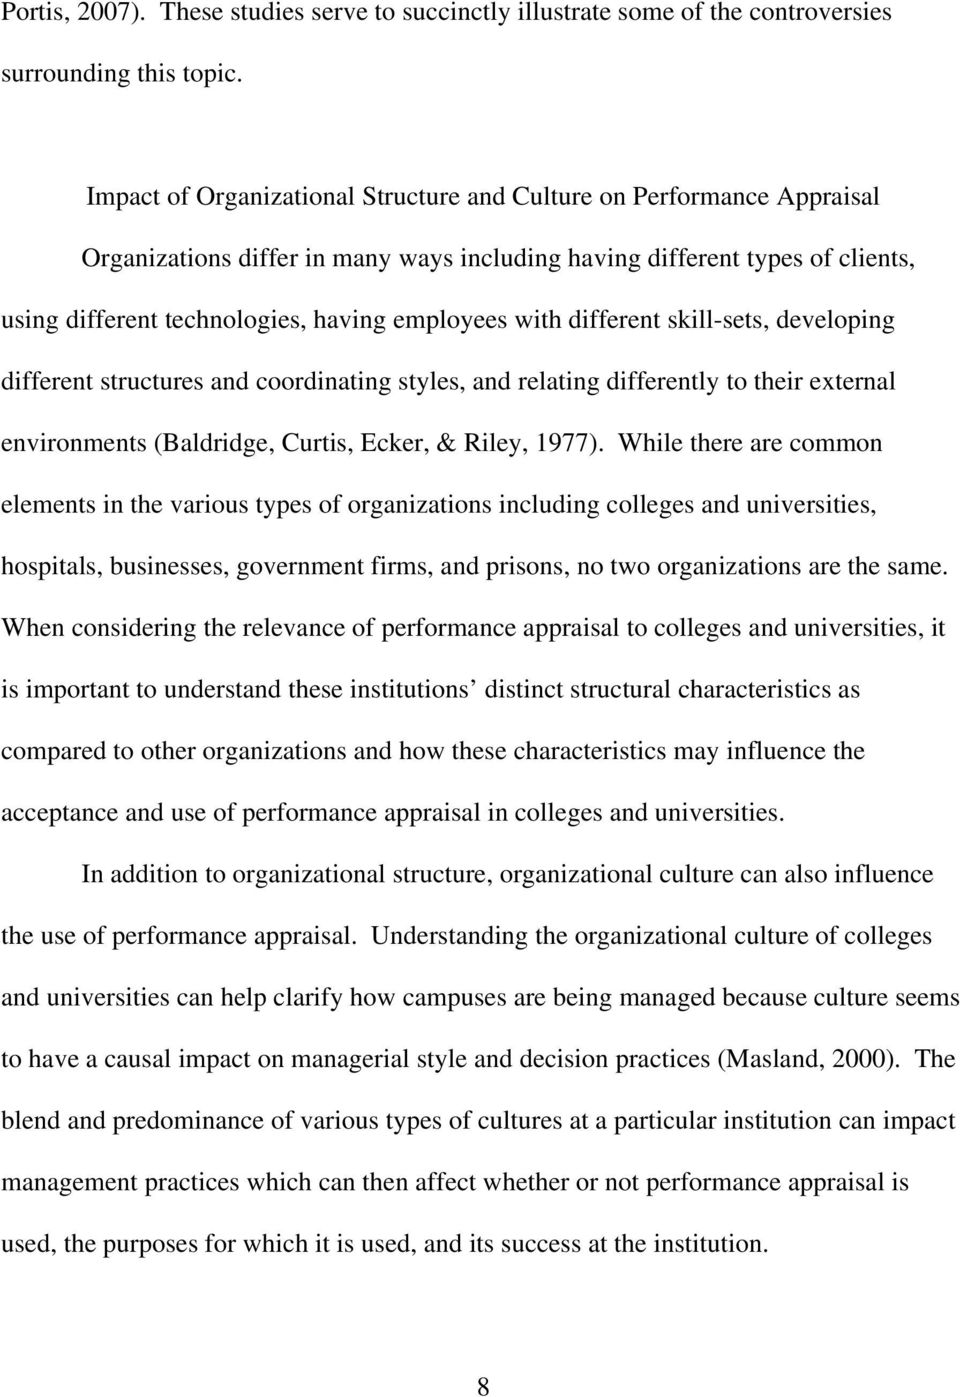 with different skill-sets, developing different structures and coordinating styles, and relating differently to their external environments (Baldridge, Curtis, Ecker, & Riley, 1977).